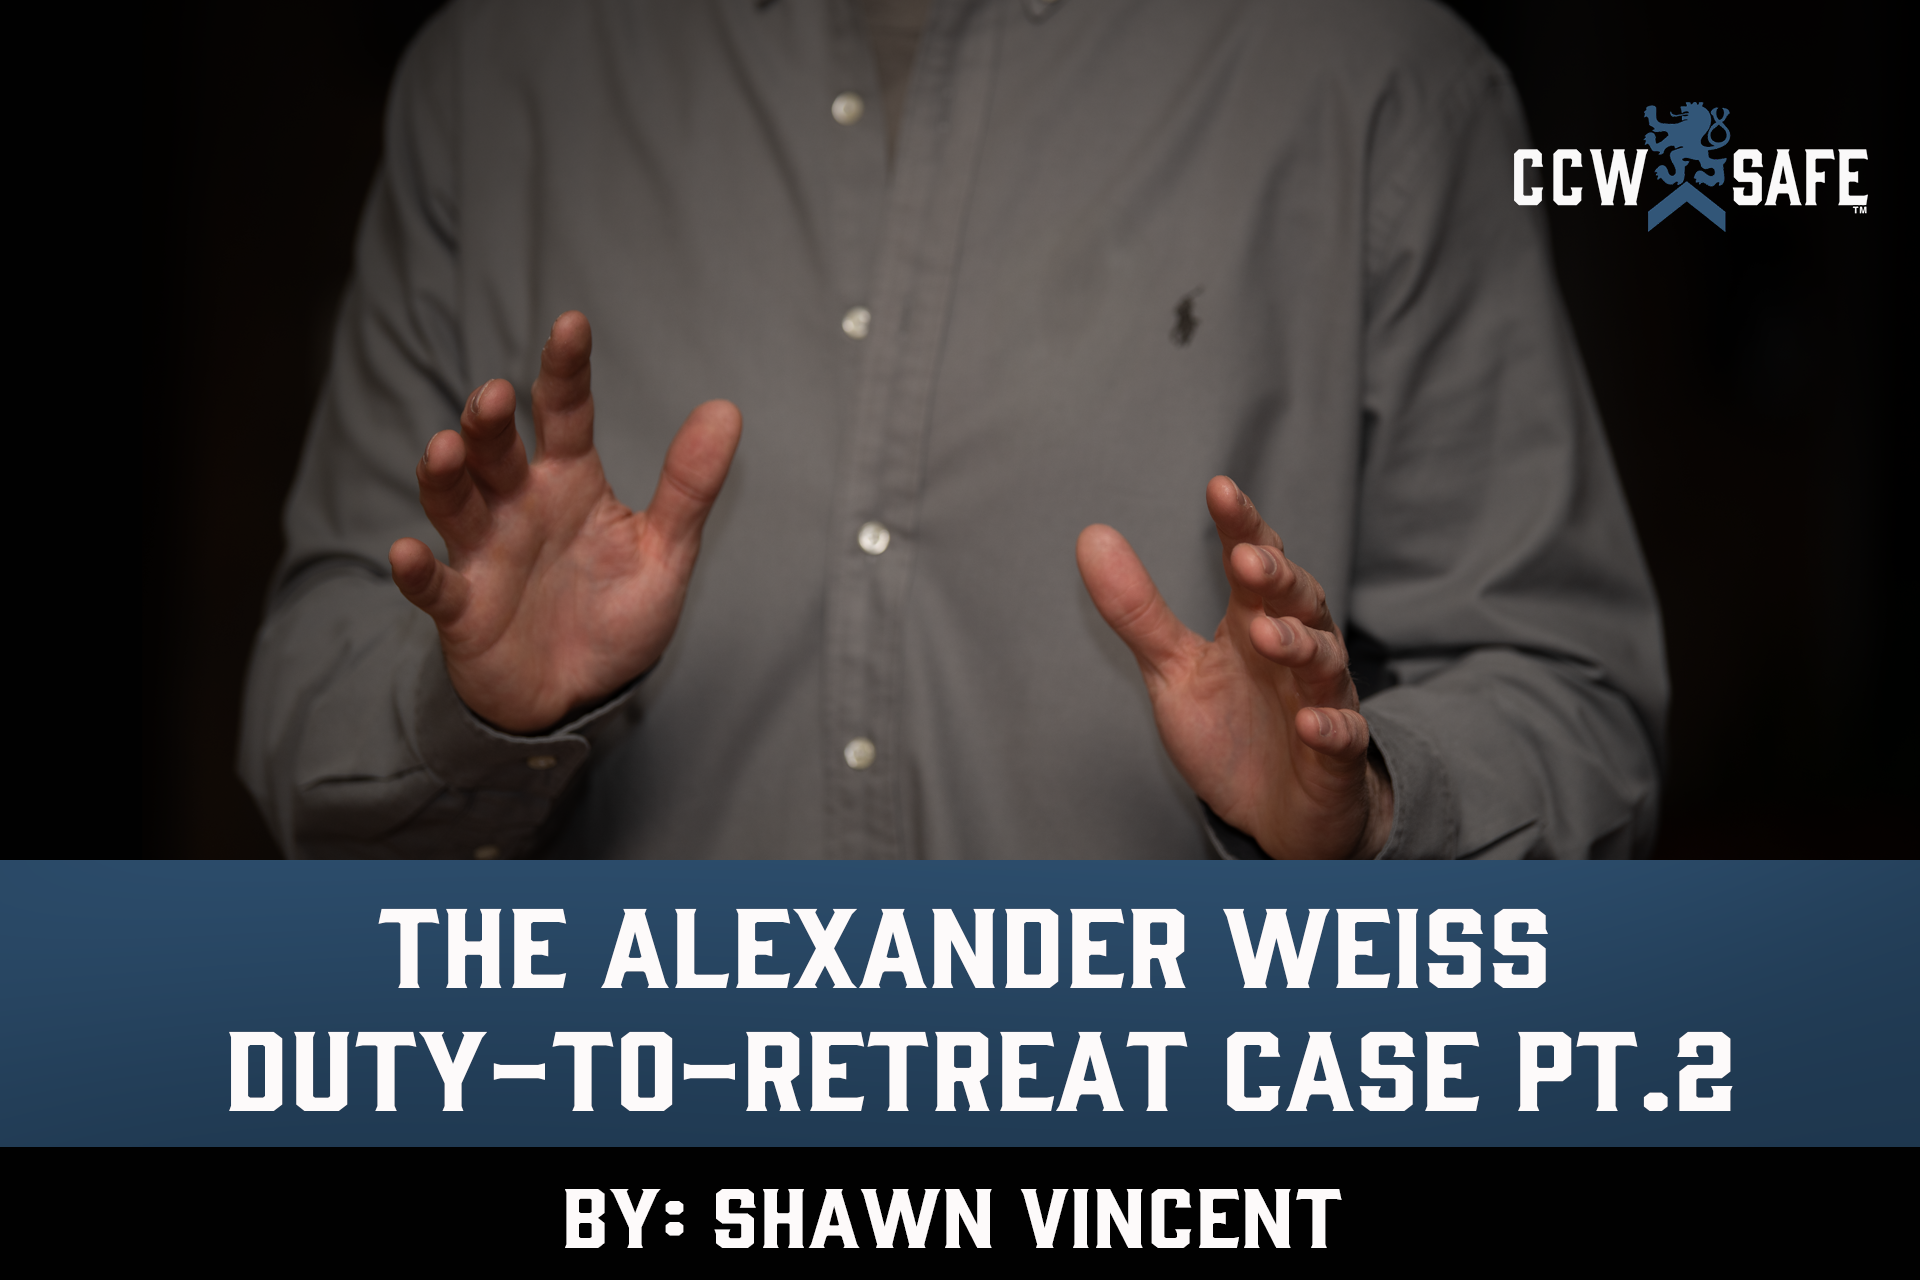 The Alexander Weiss Duty-to-Retreat Case Part 2